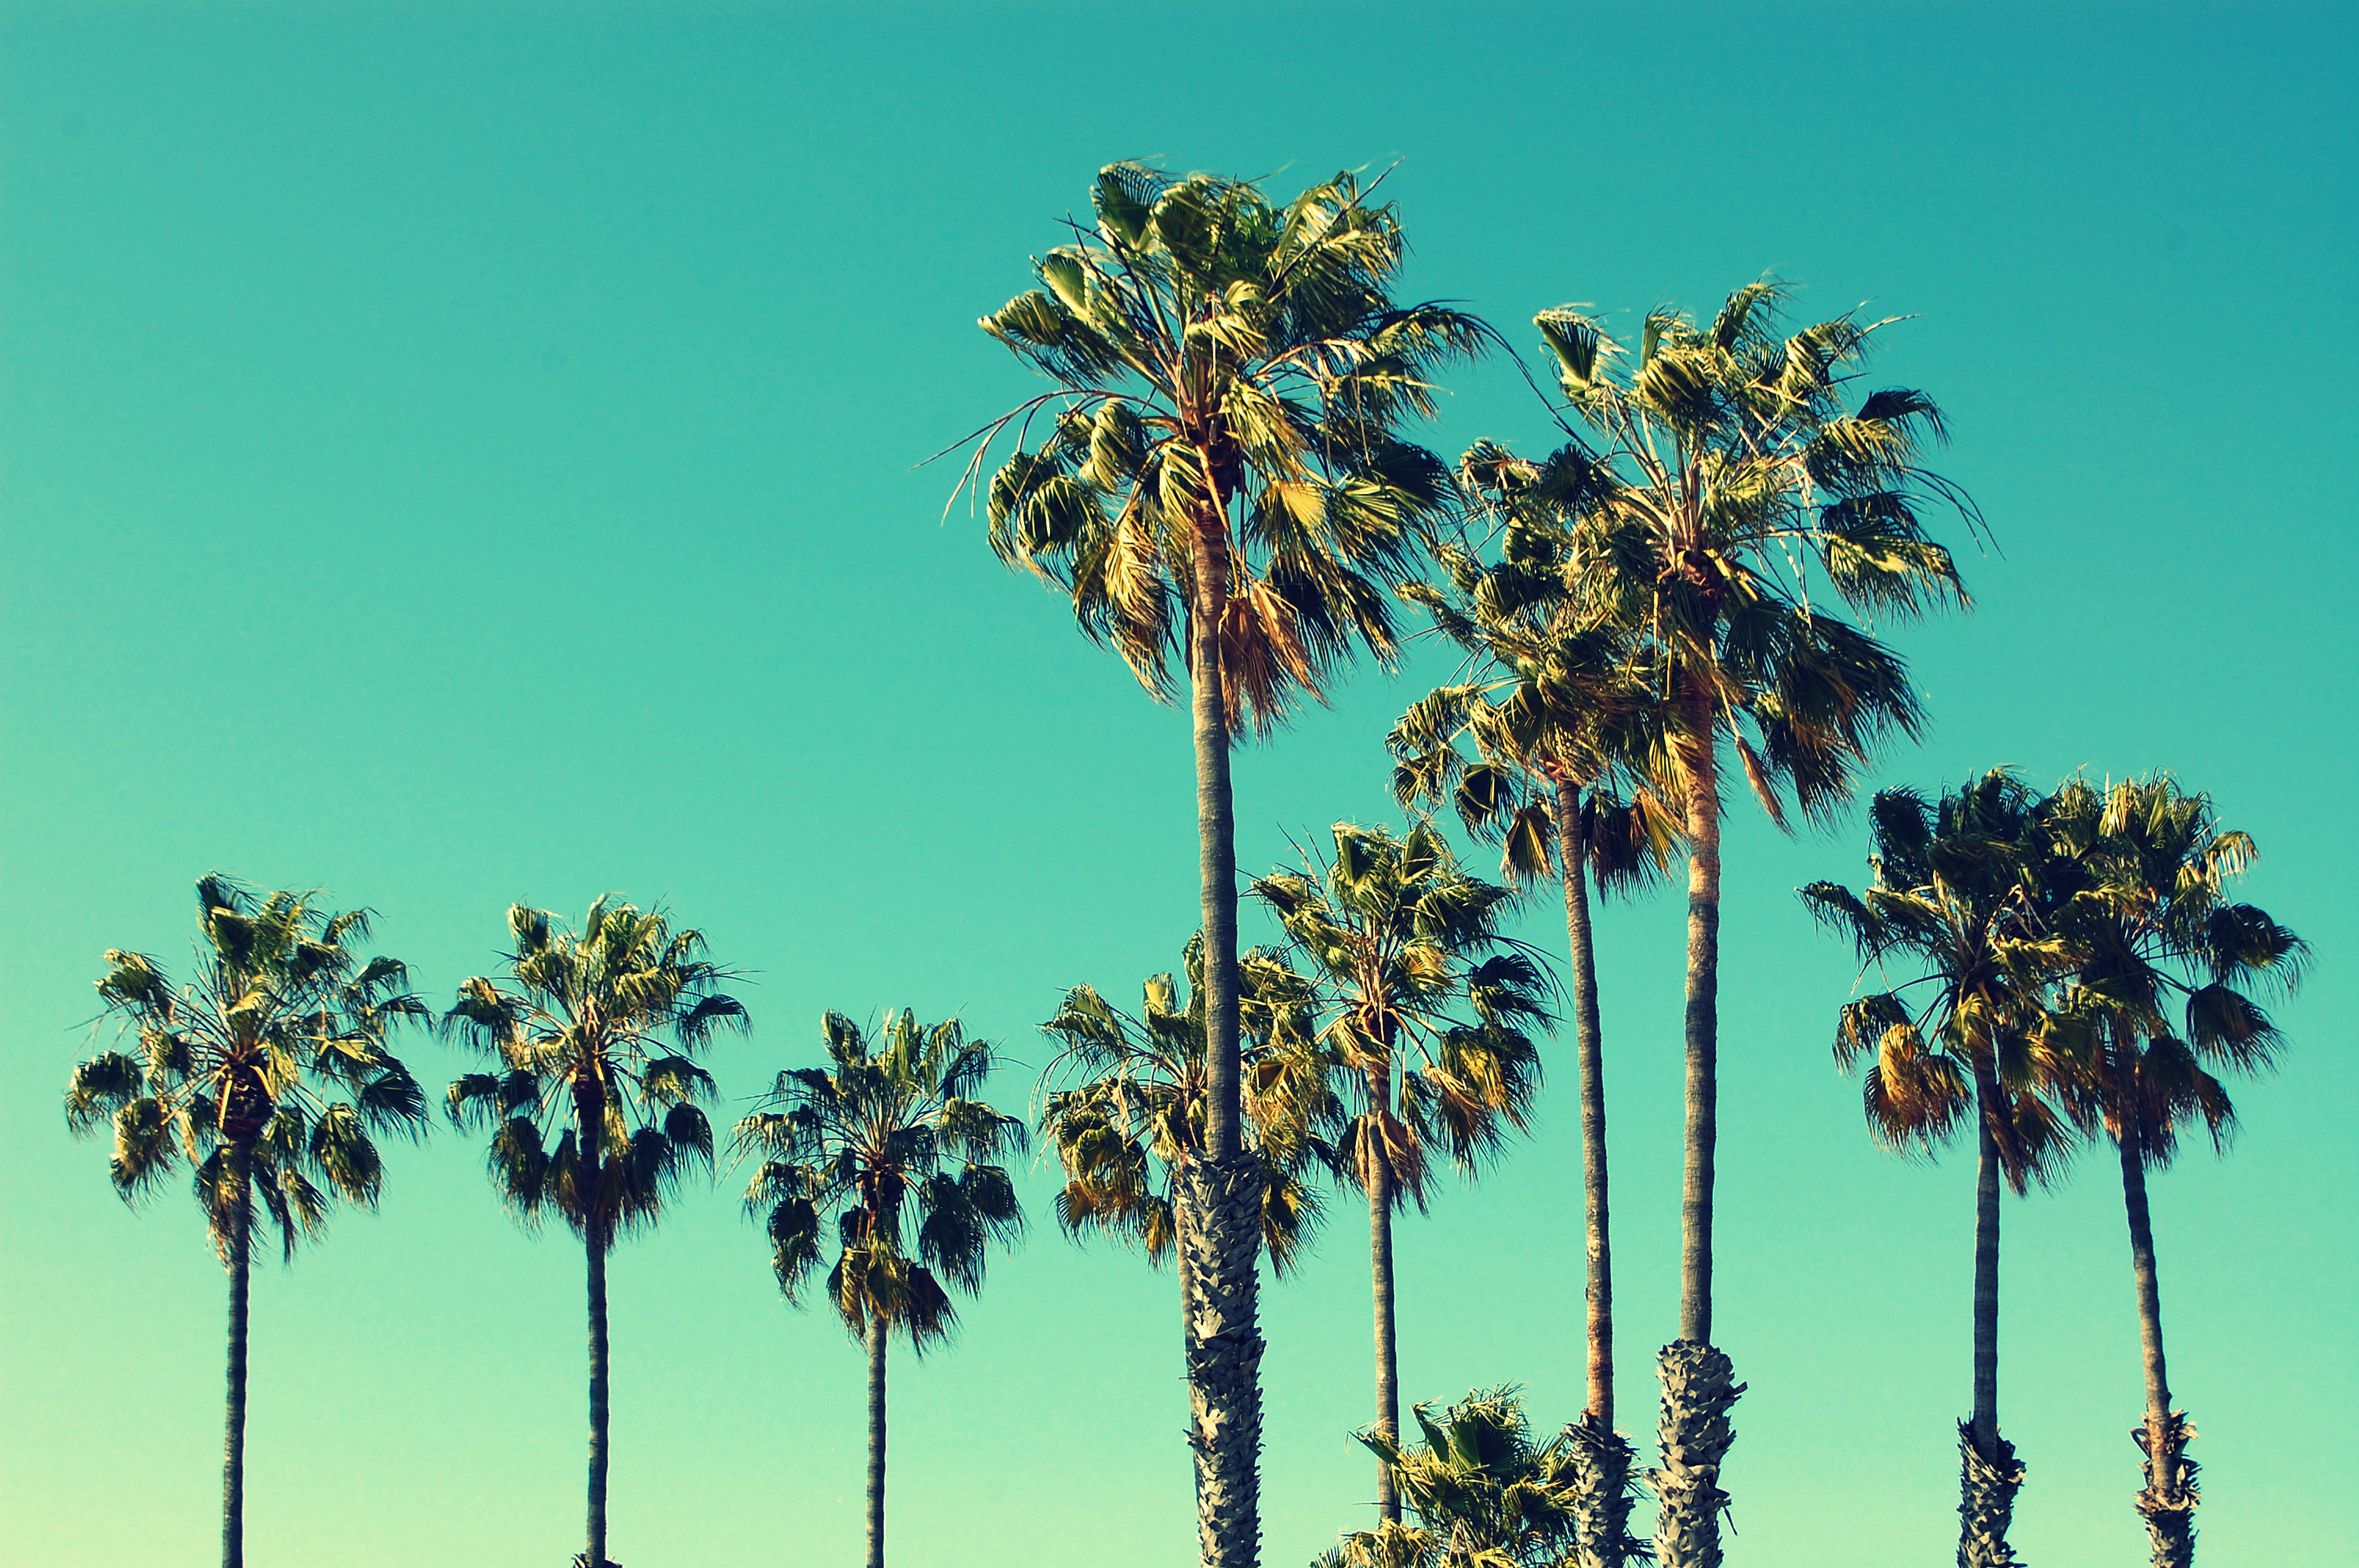 Palm trees at Santa Monica beach